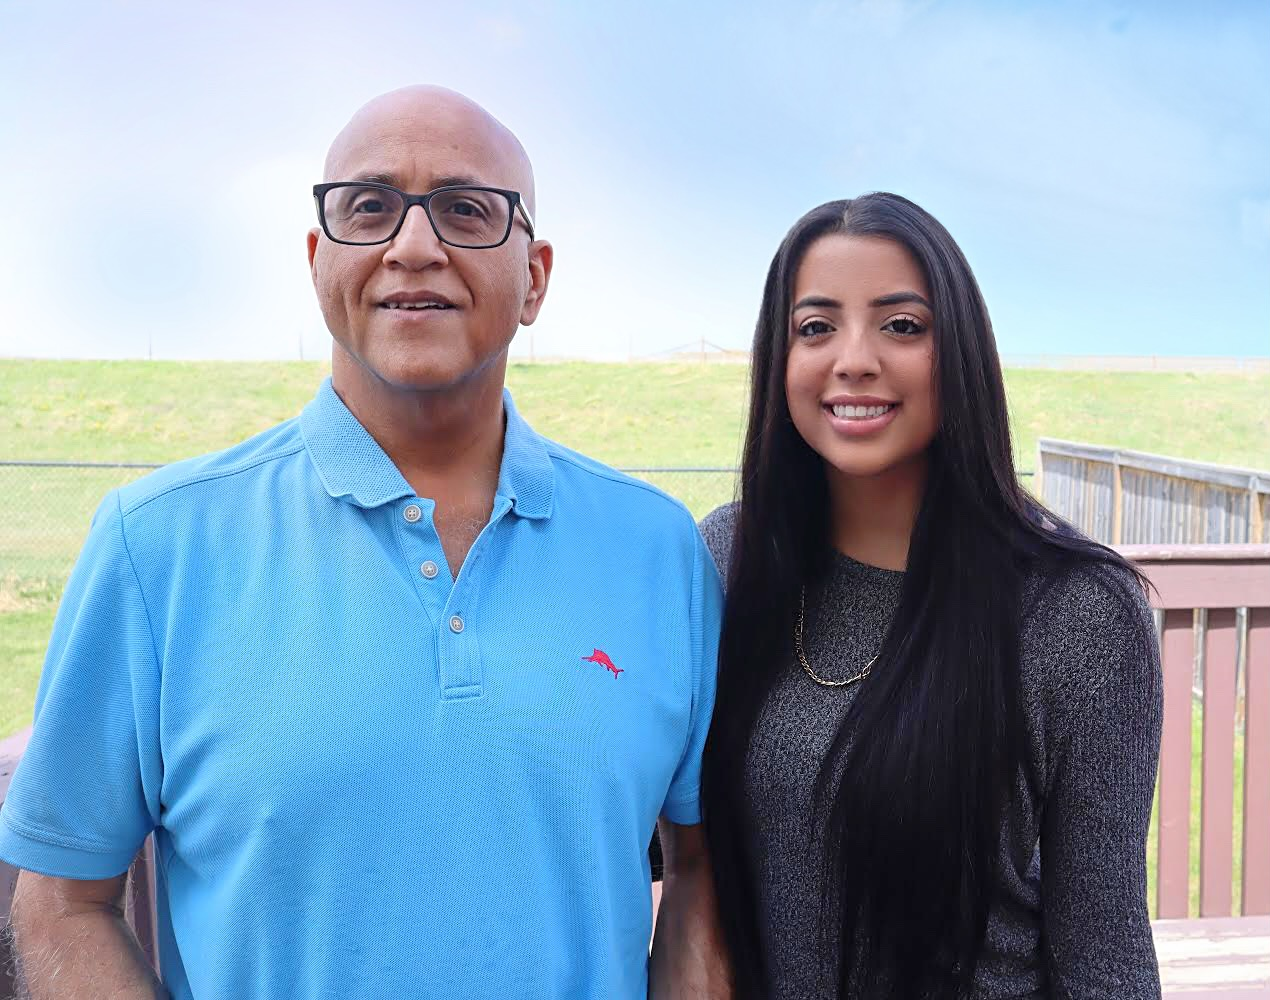 img des: Shamir and his daughter Ambreena standing together outside.